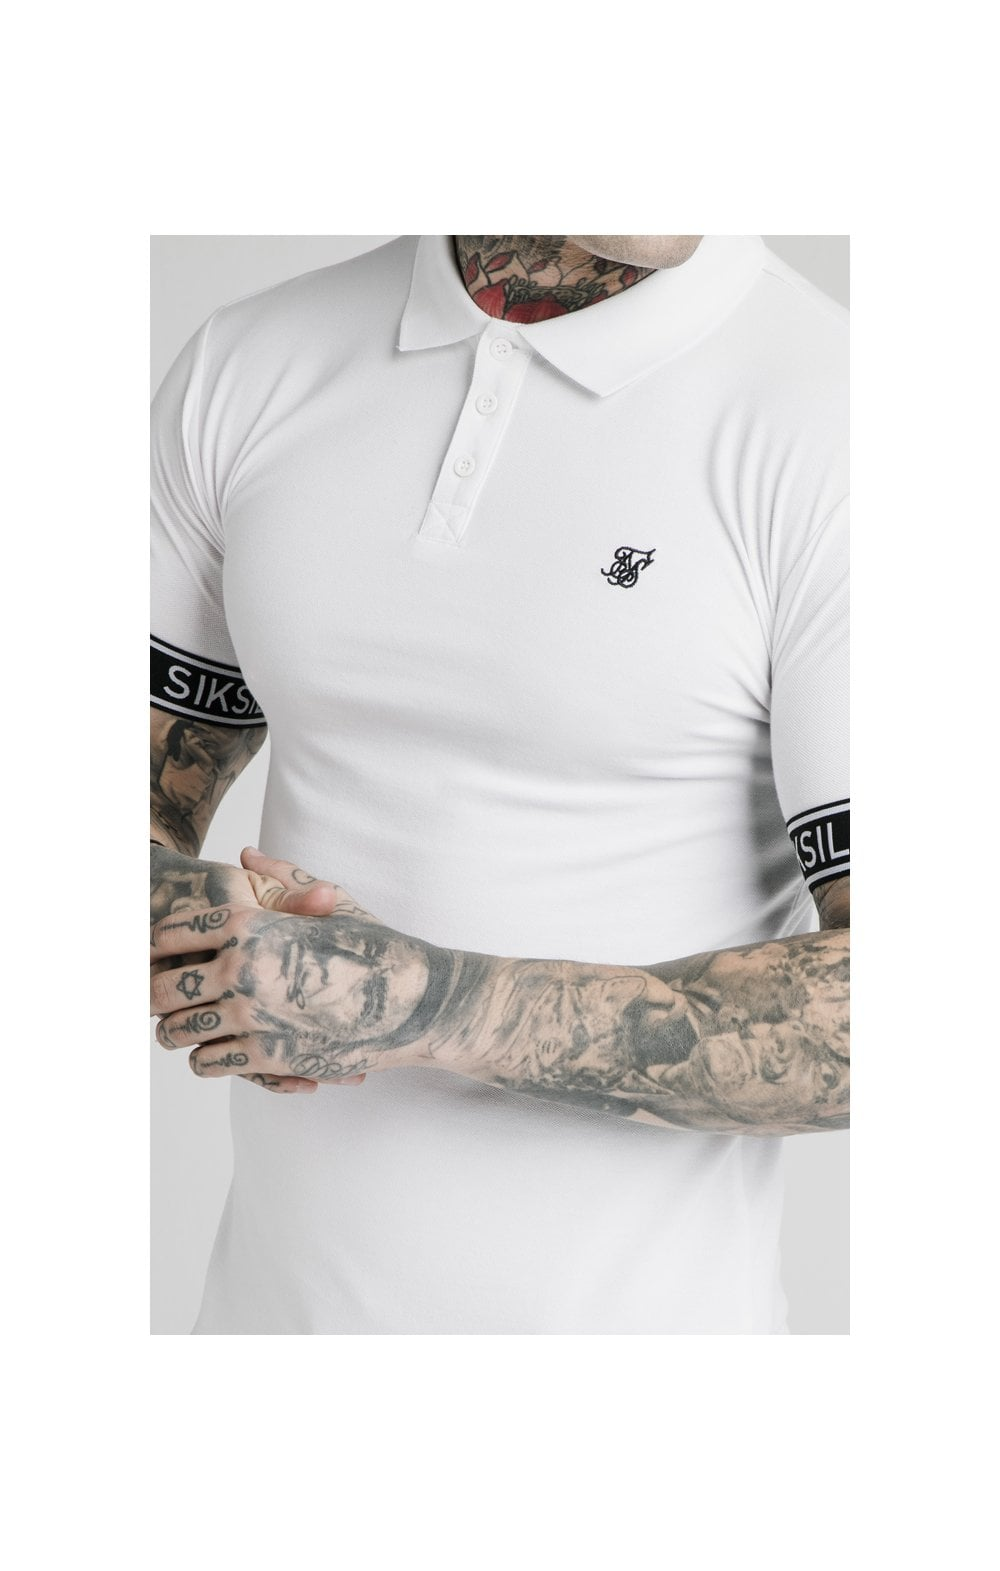 SikSilk S/S Tech Polo Tee - White